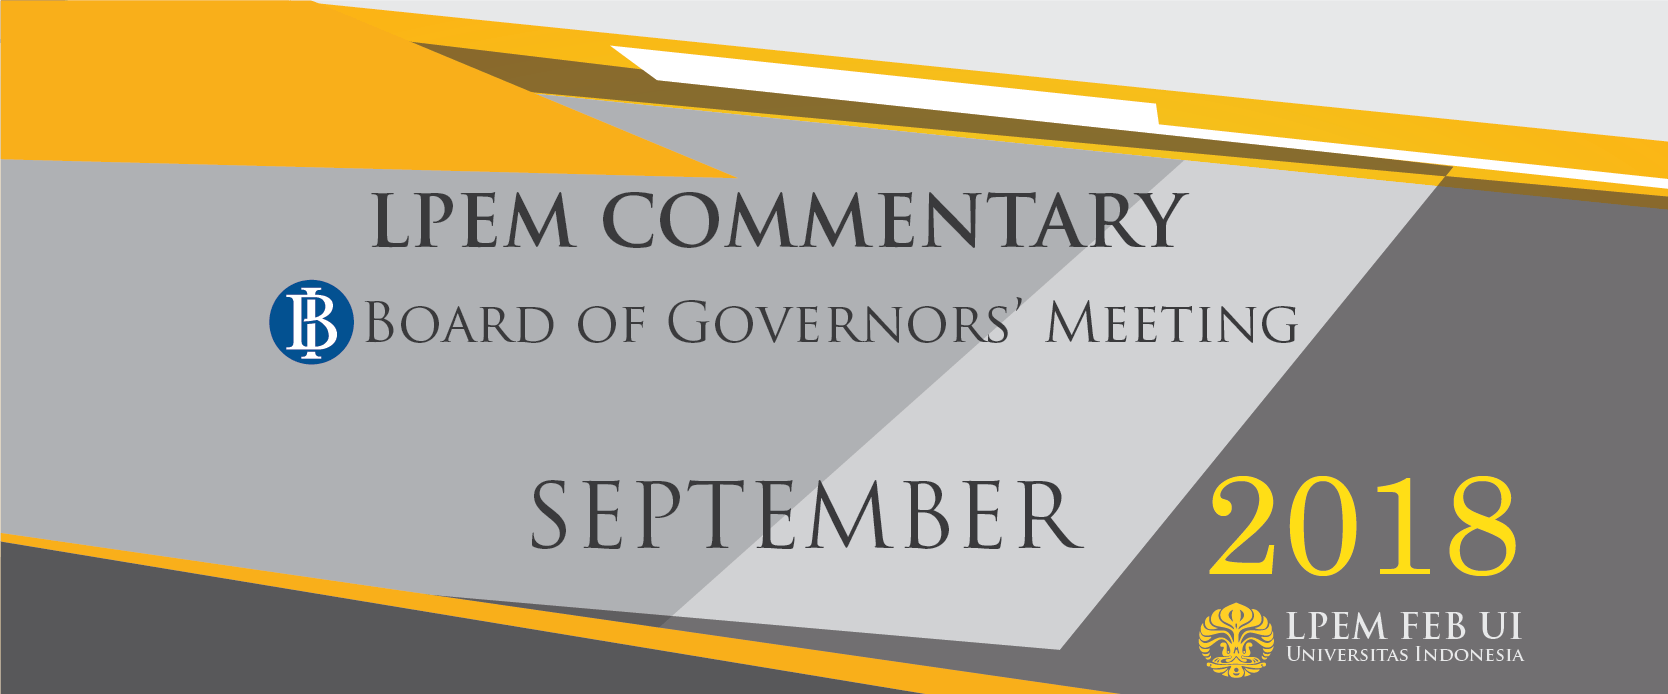 MACROECONOMIC ANALYSIS SERIES:  BI Board of Governor Meeting,  September 2018